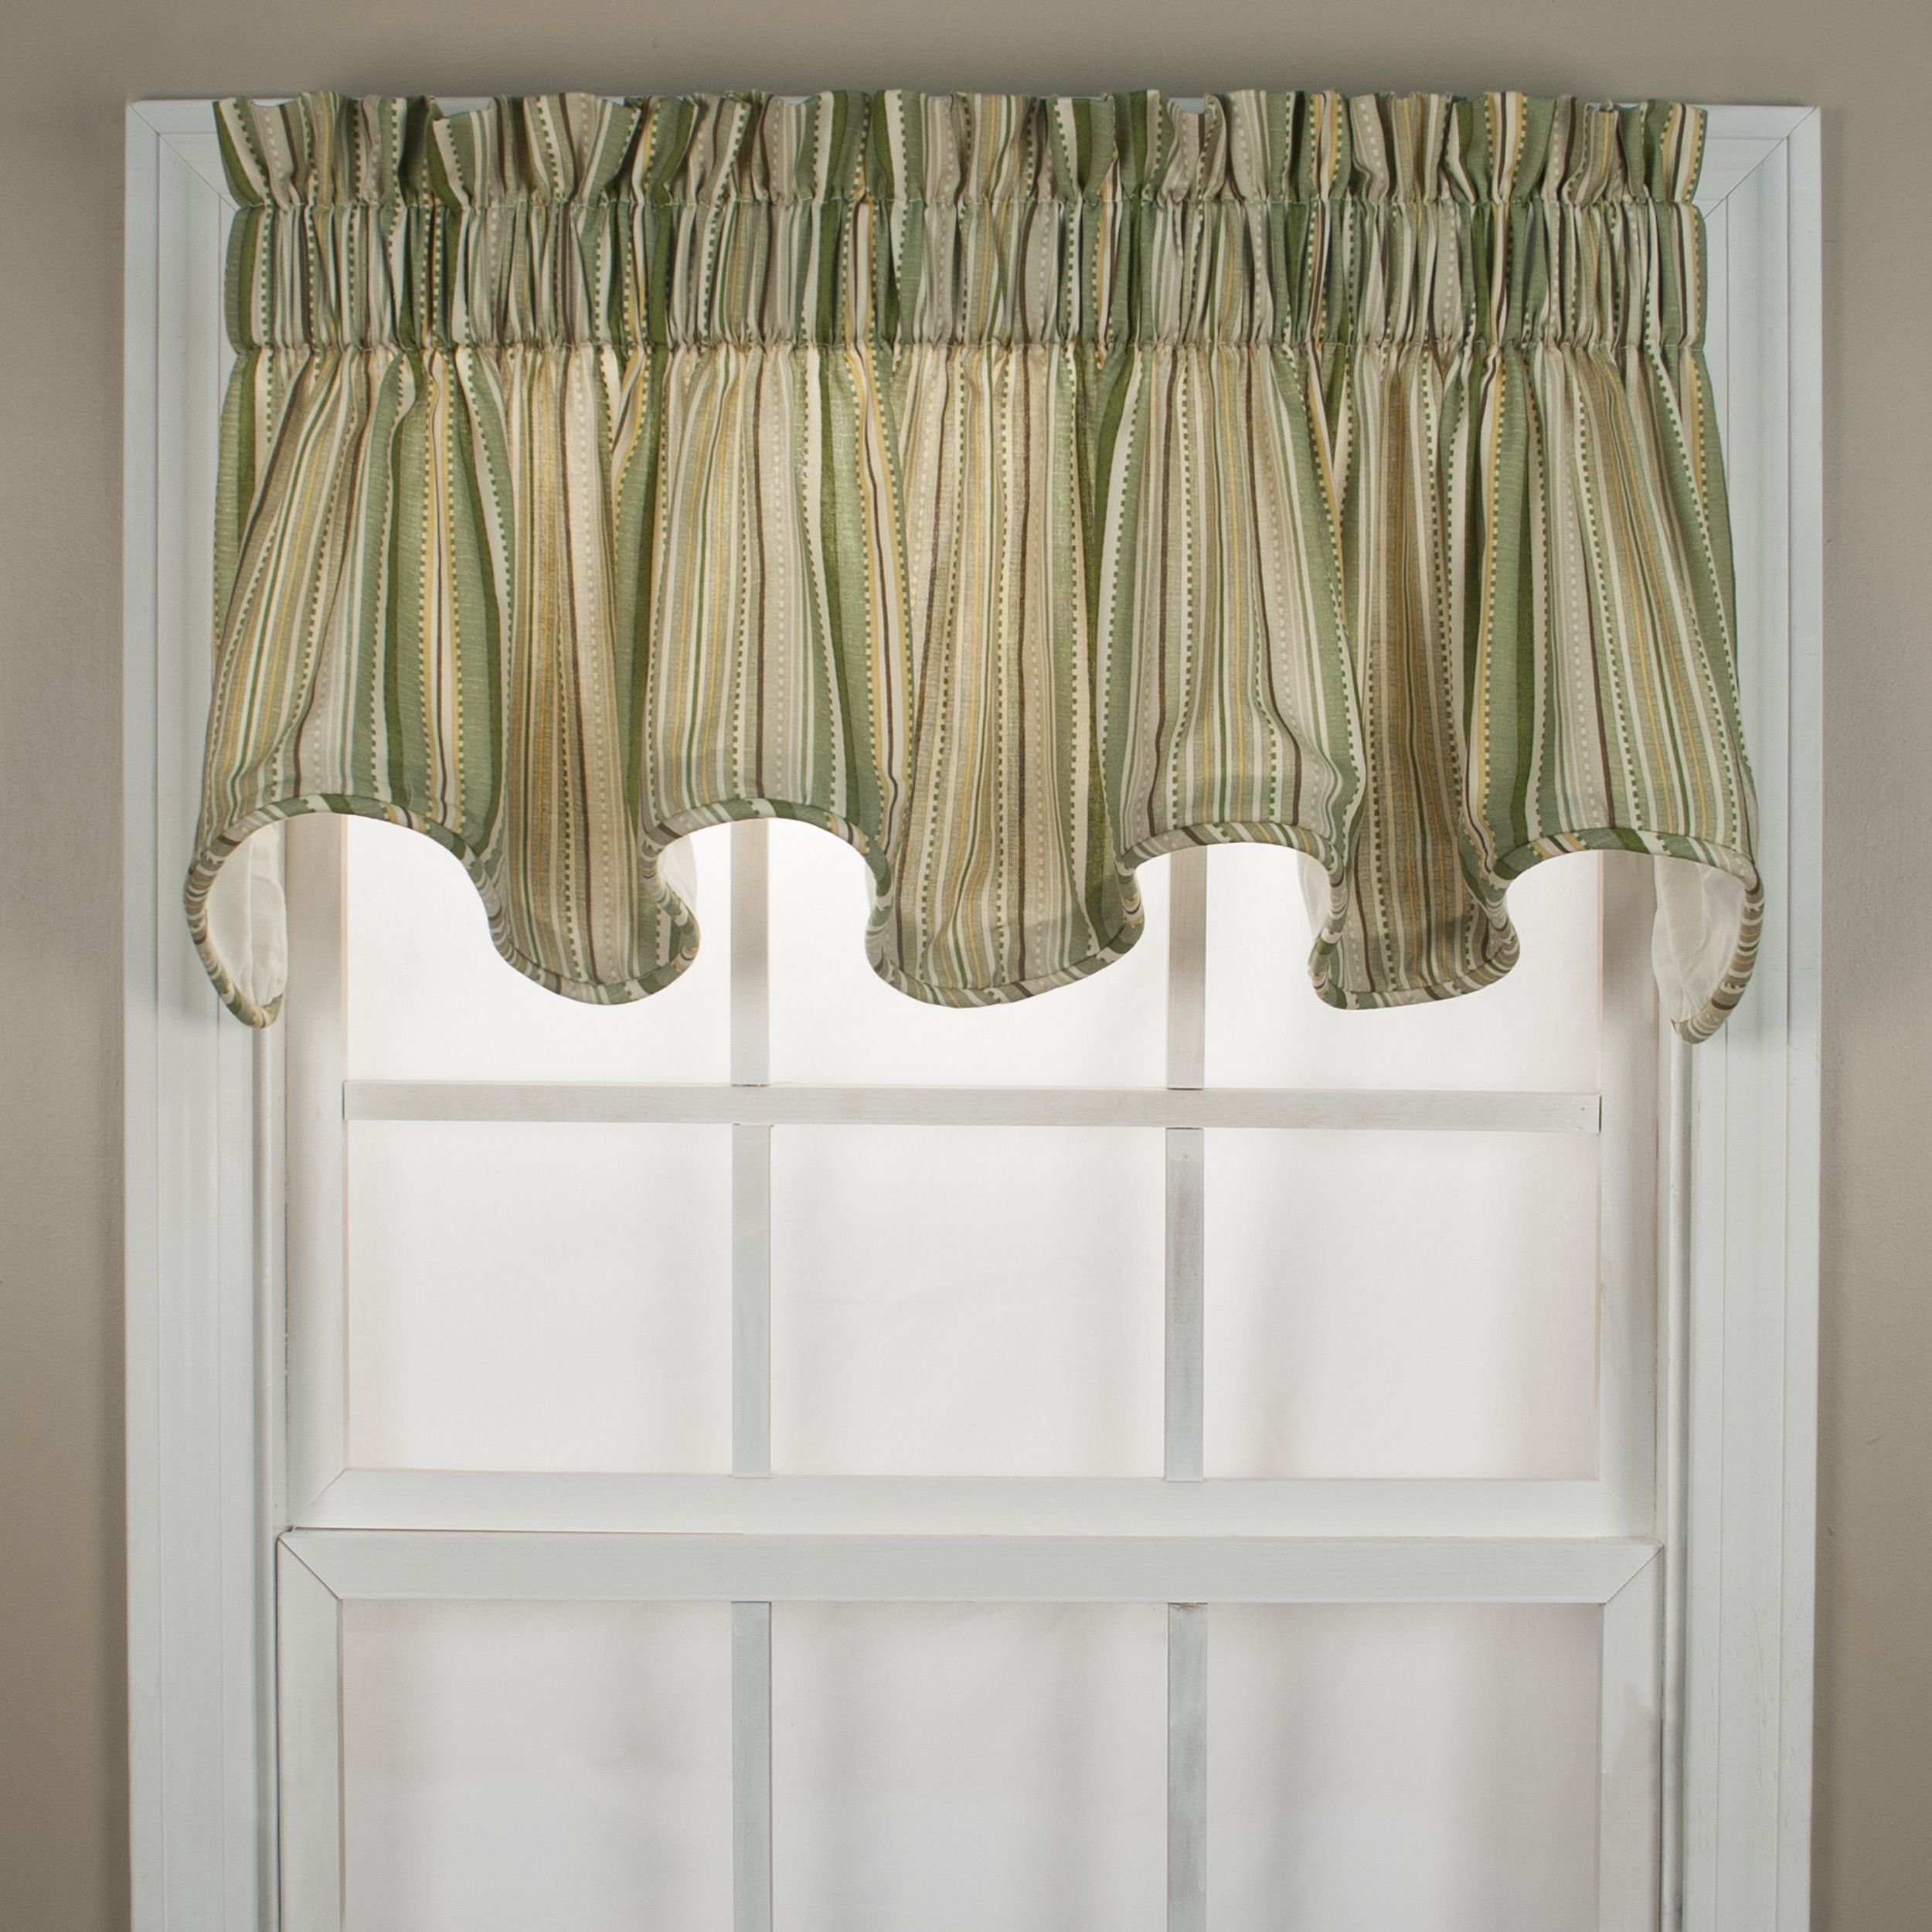 Highlight your windows with this elegant and flattering Kensington ...